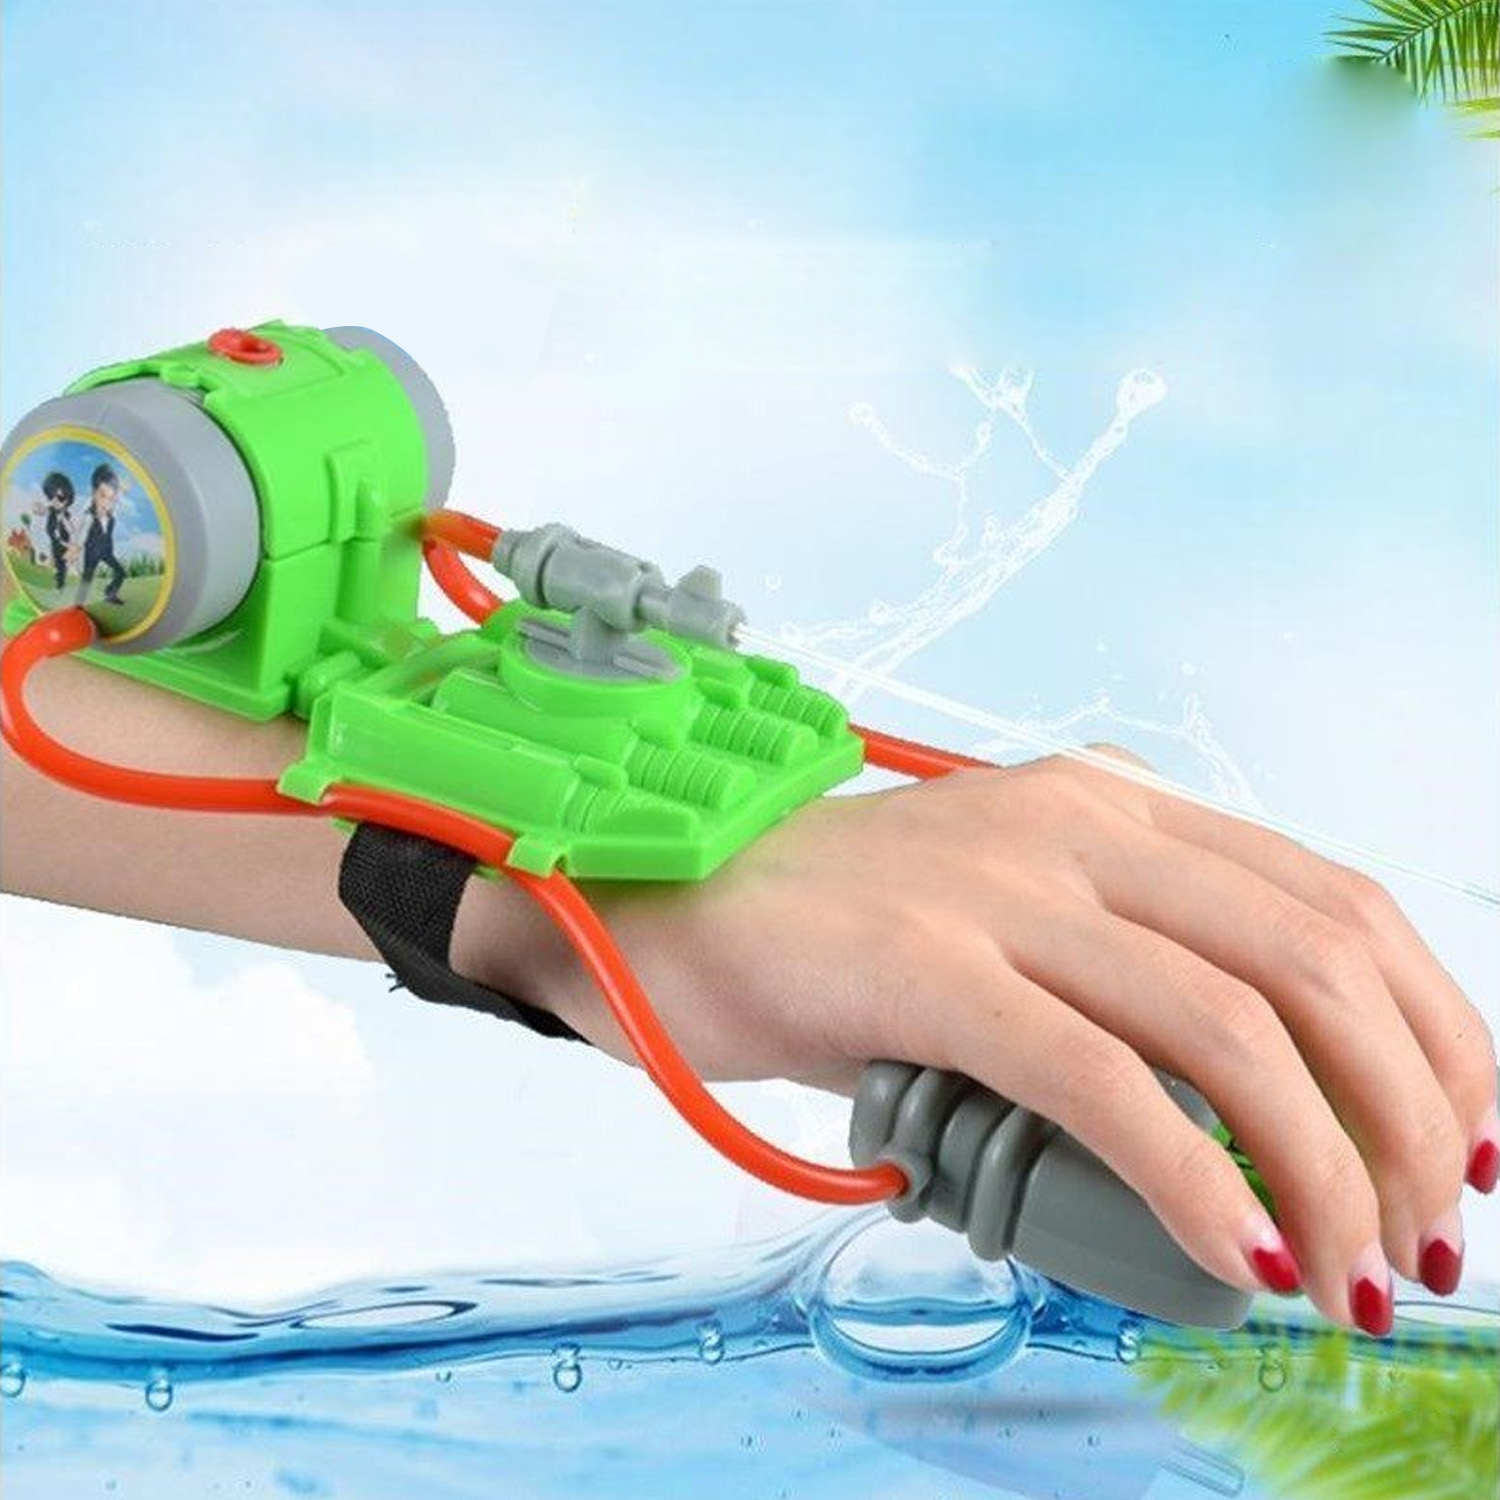 Long Shooting Range Wrist Water Gun Toy For Kid Outdoor Water Shooter Toy Pool Beach Sand Water Fighting Squirt Toy Random Color